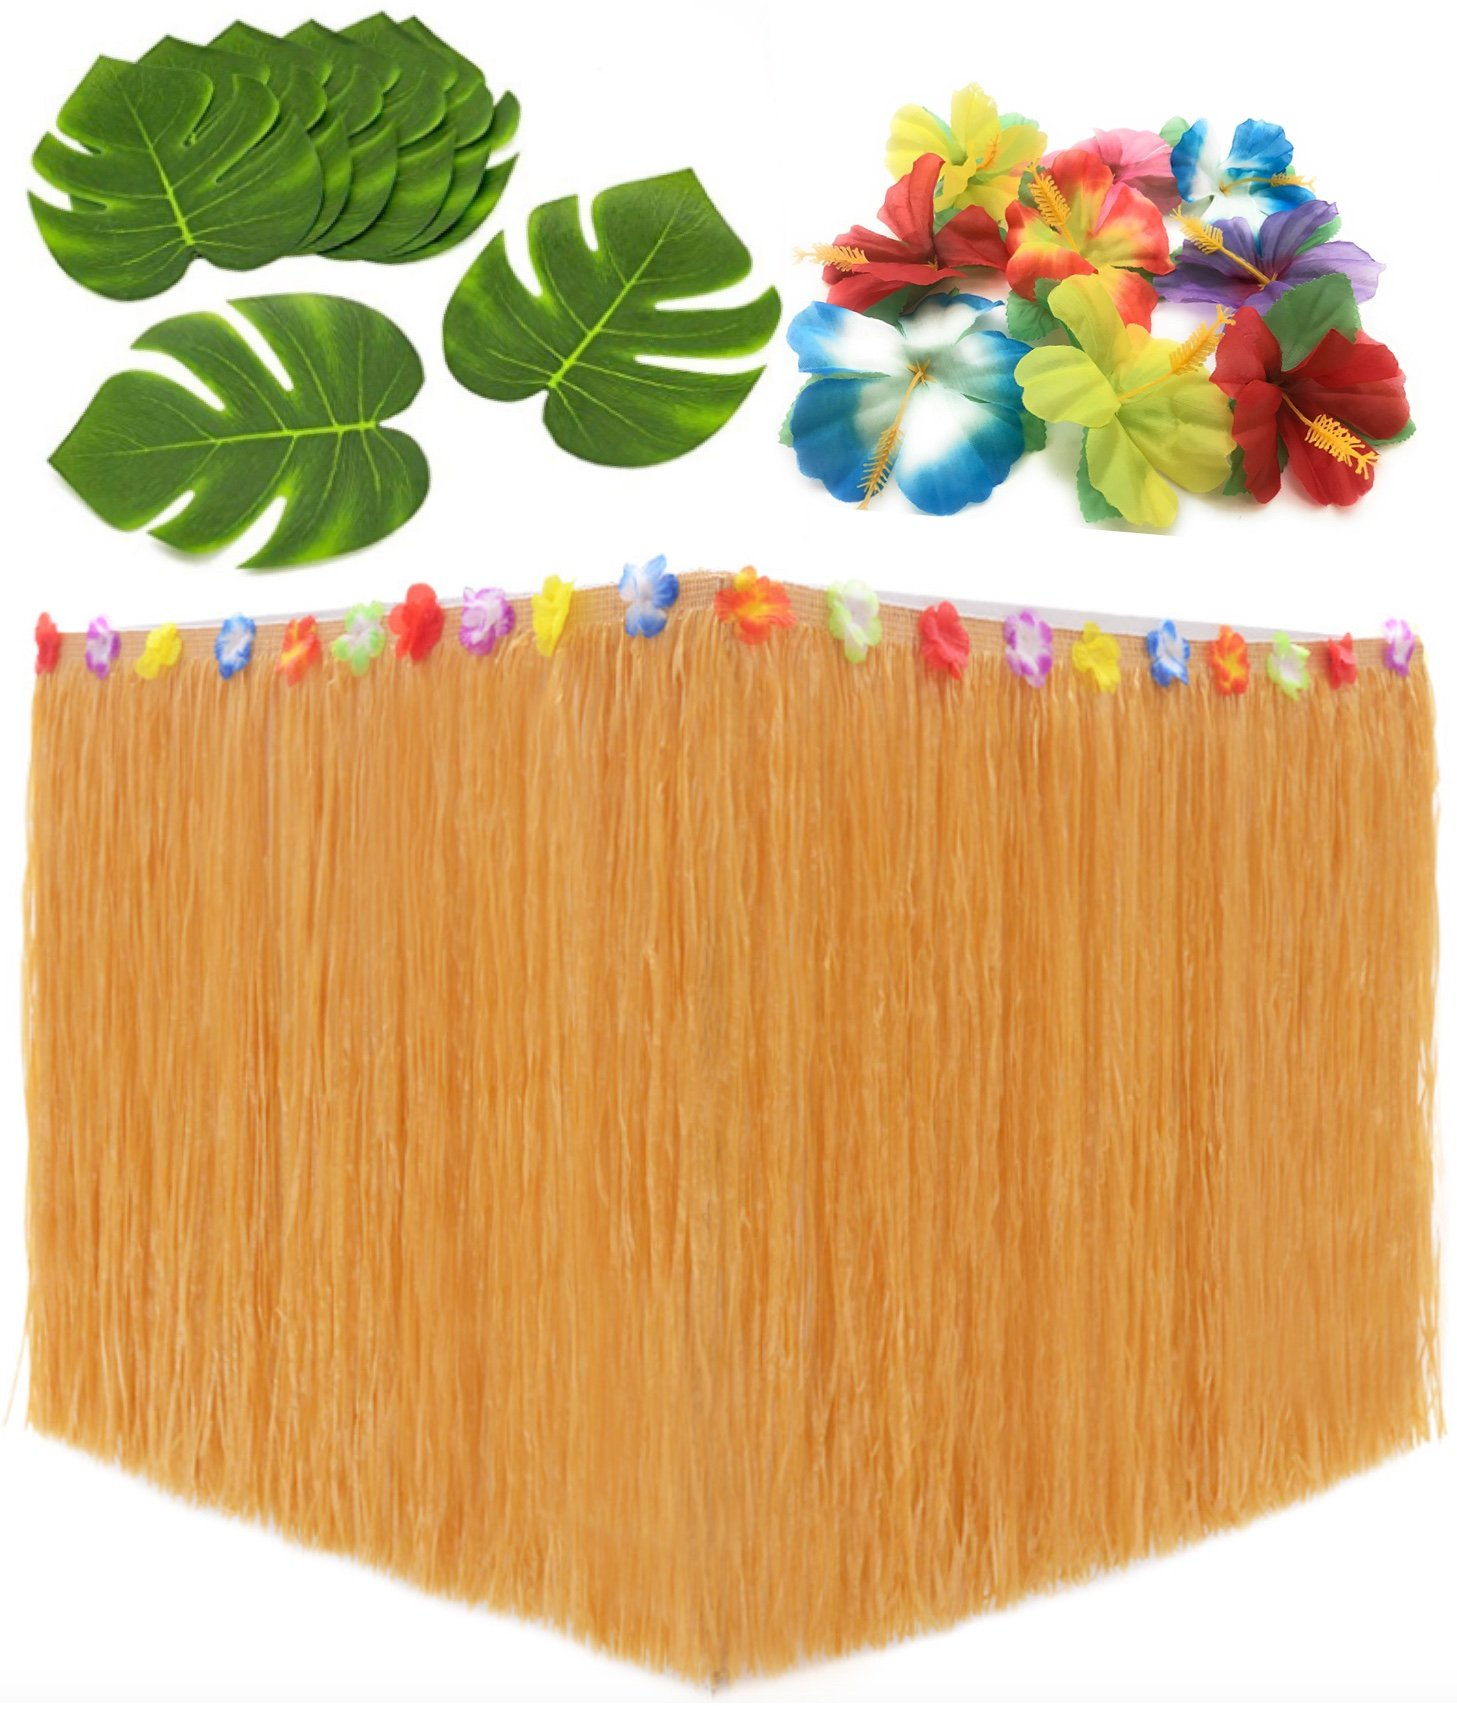 Moana Birthday Party Supplies. Hawaiian Decorations Bundle of 1 Beige Grass Table Skirt + 24 Hibiscus Flowers + 12 Tropical Leaves. Hula, Luau, Maui, Hawaiian, Moana Themed Party Decorations Set